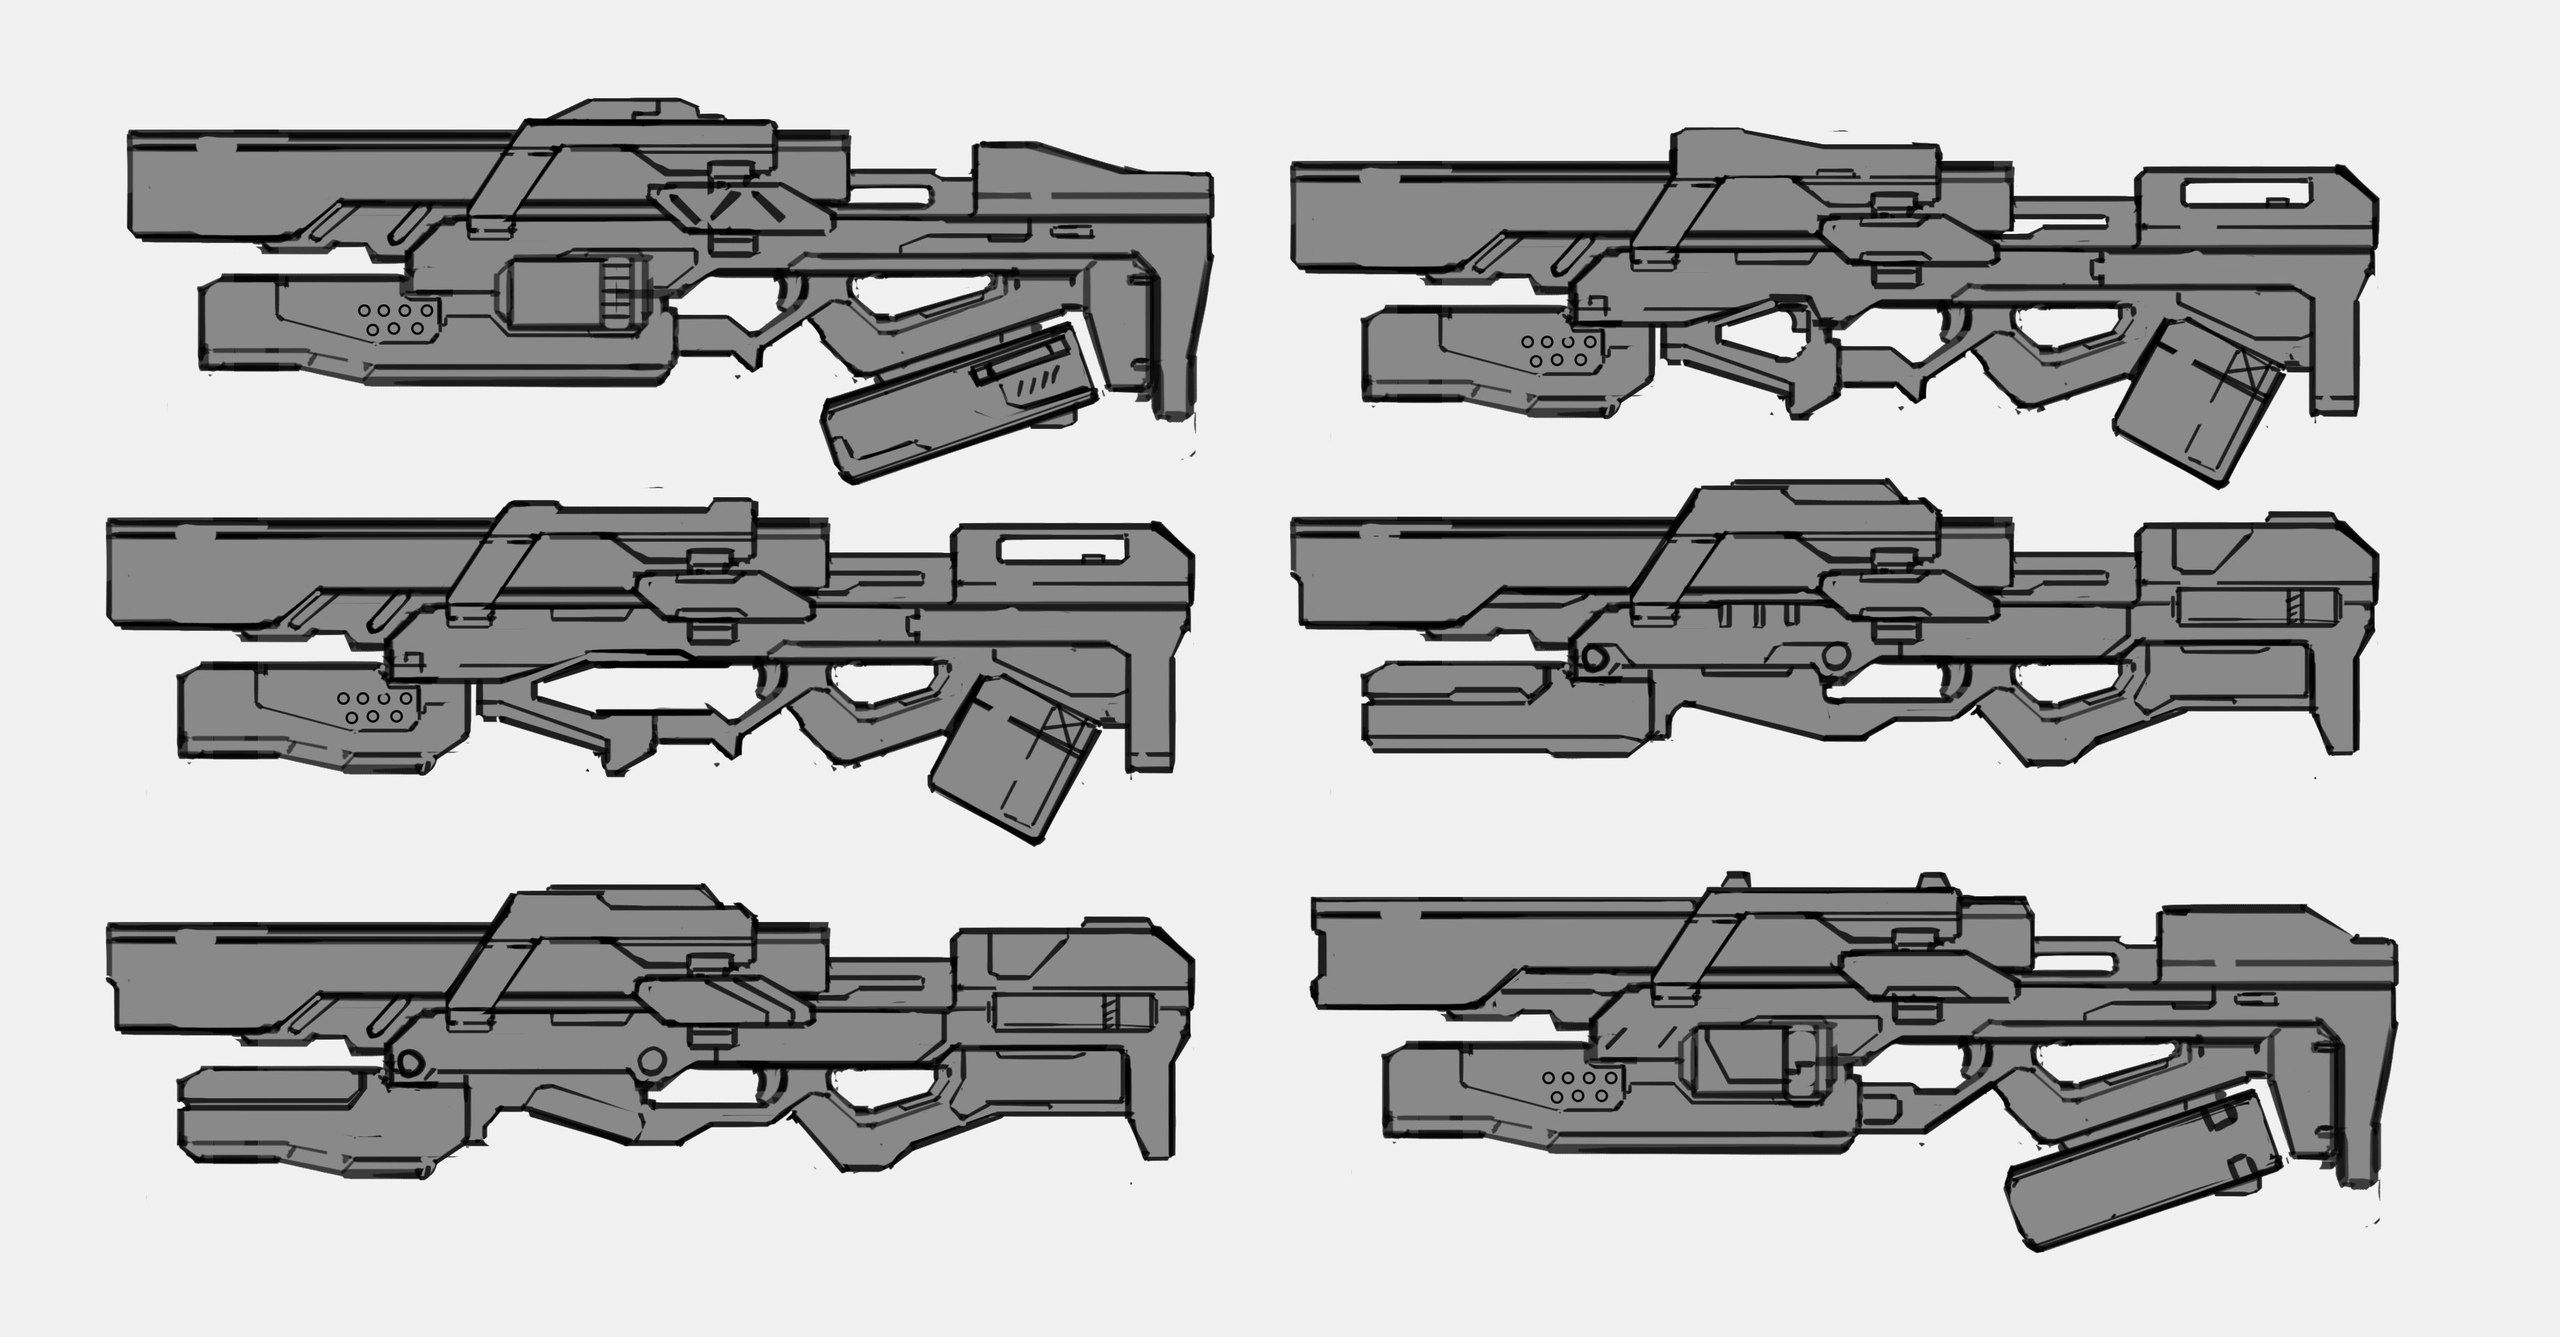 Power and plasma weapons. Perspective weapons development